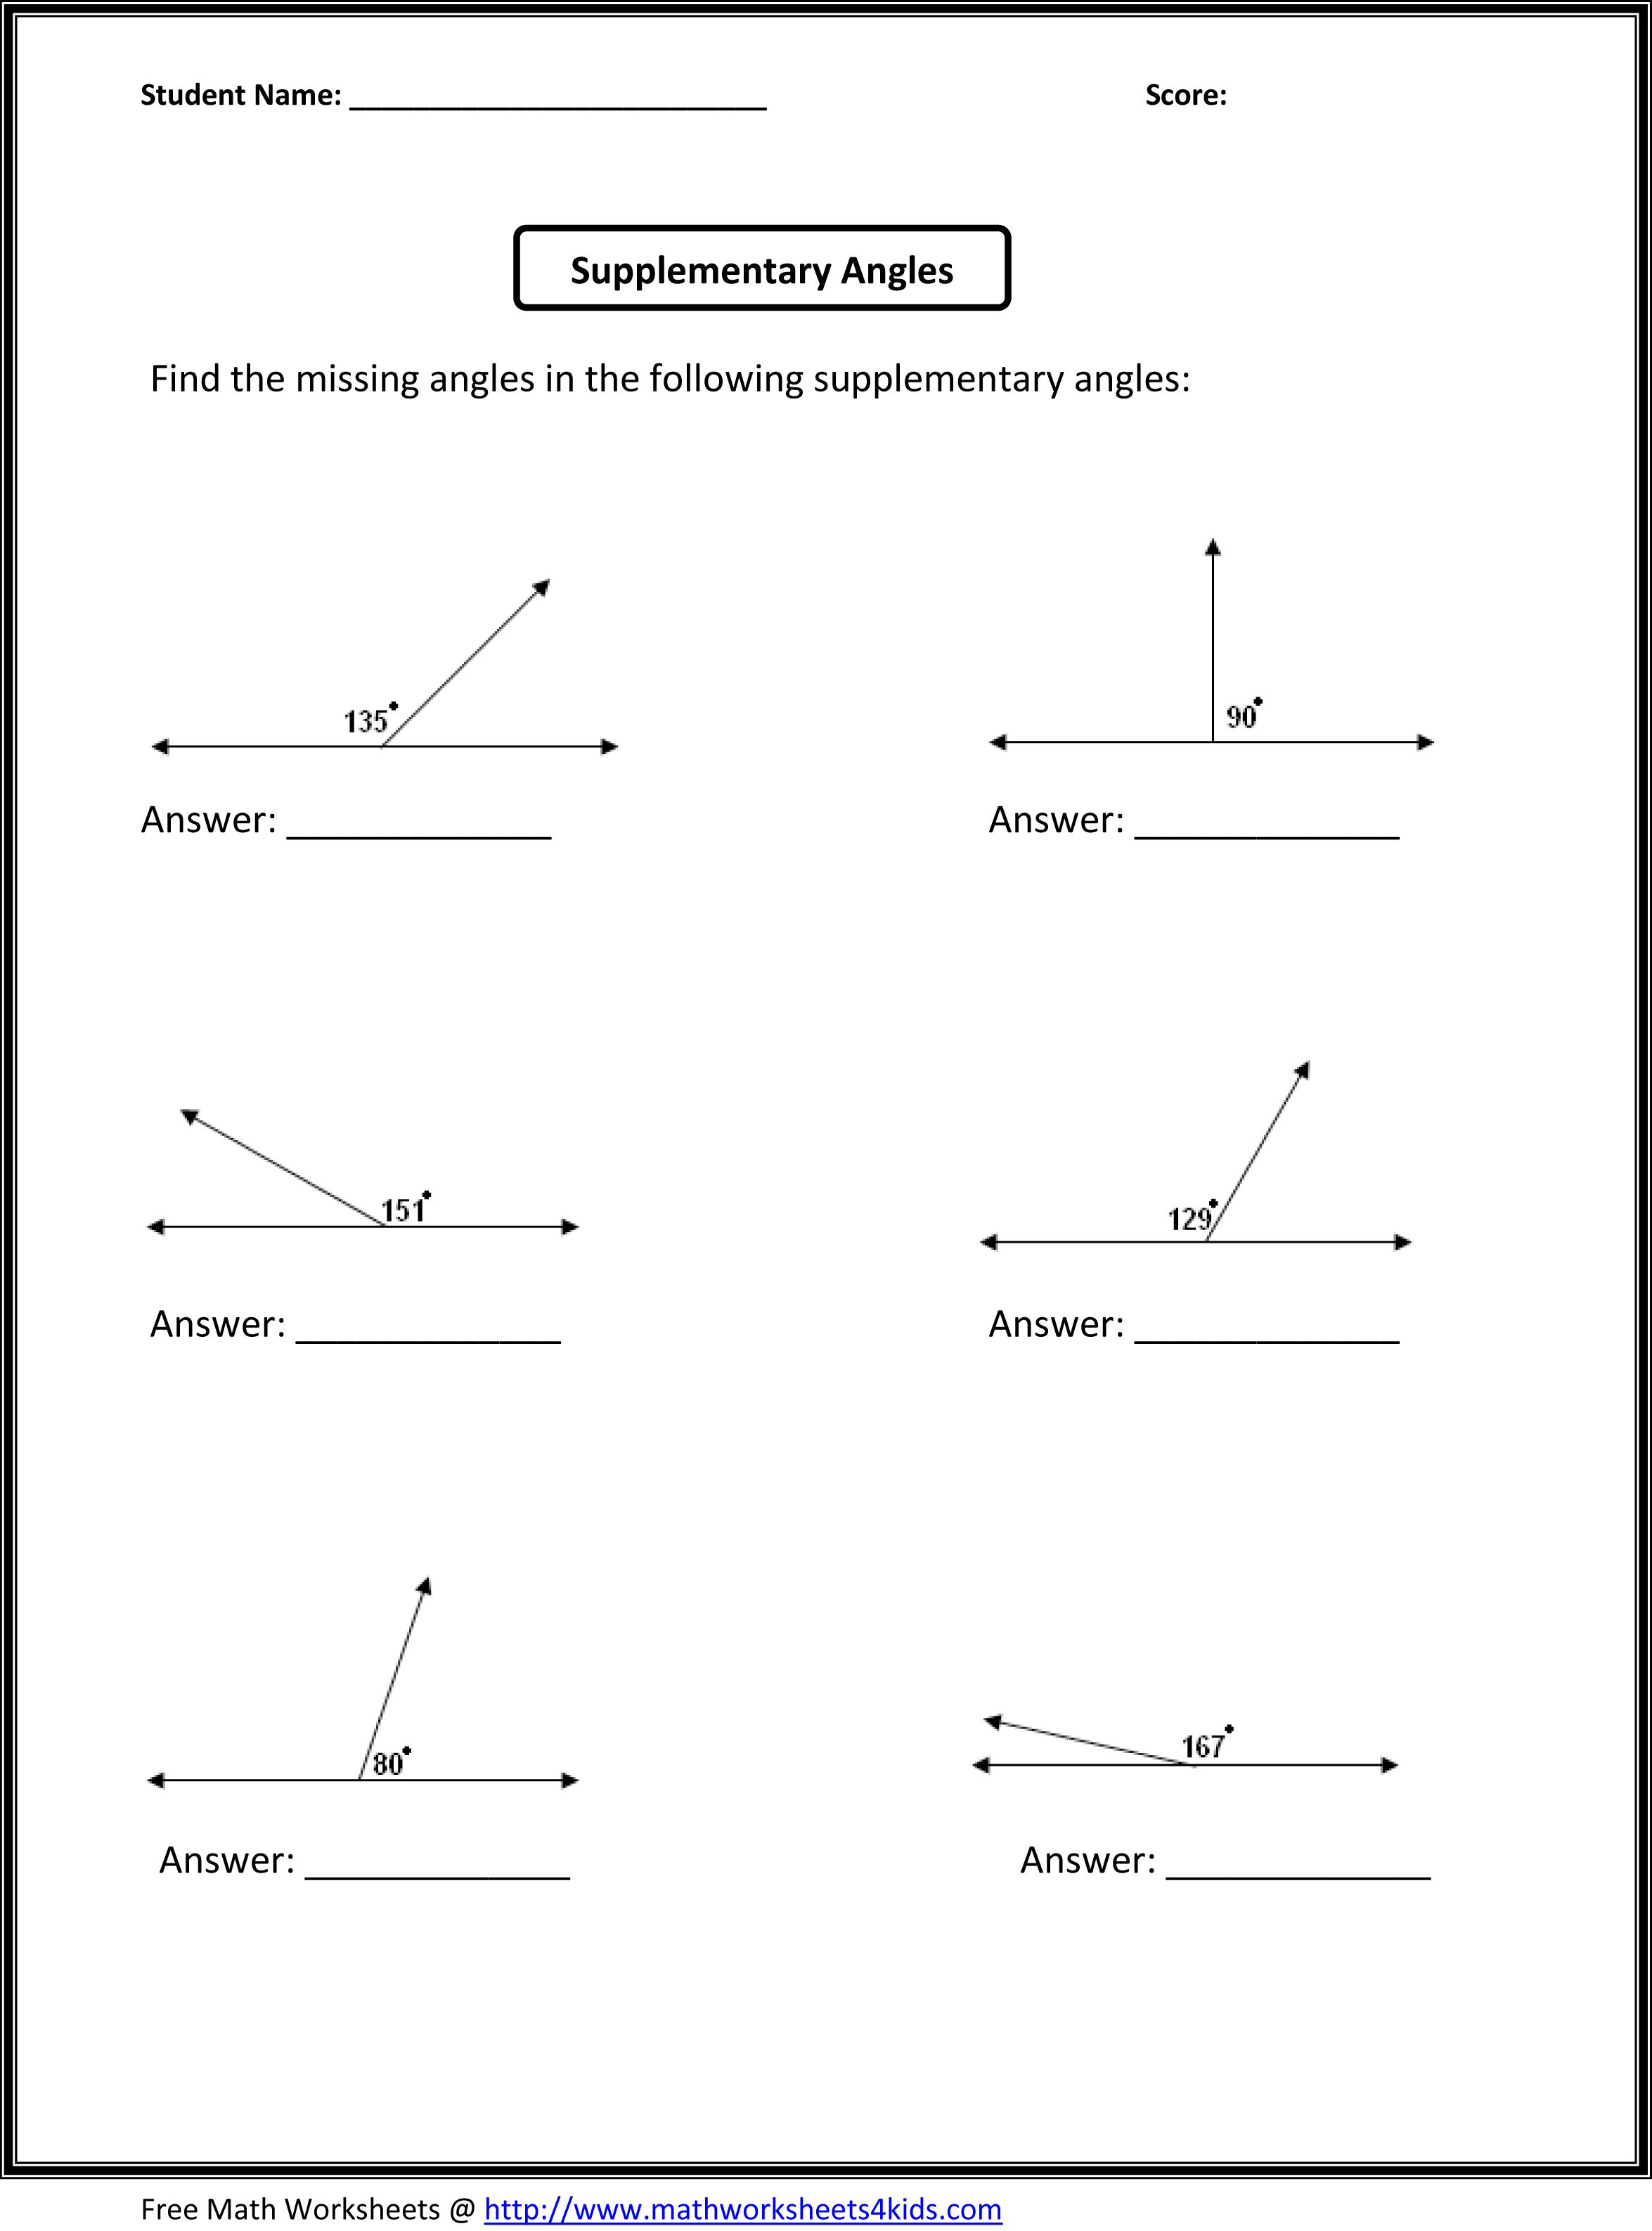 math worksheet : 1000 images about math worksheets on pinterest  addition  : Maths Worksheet For Class 6